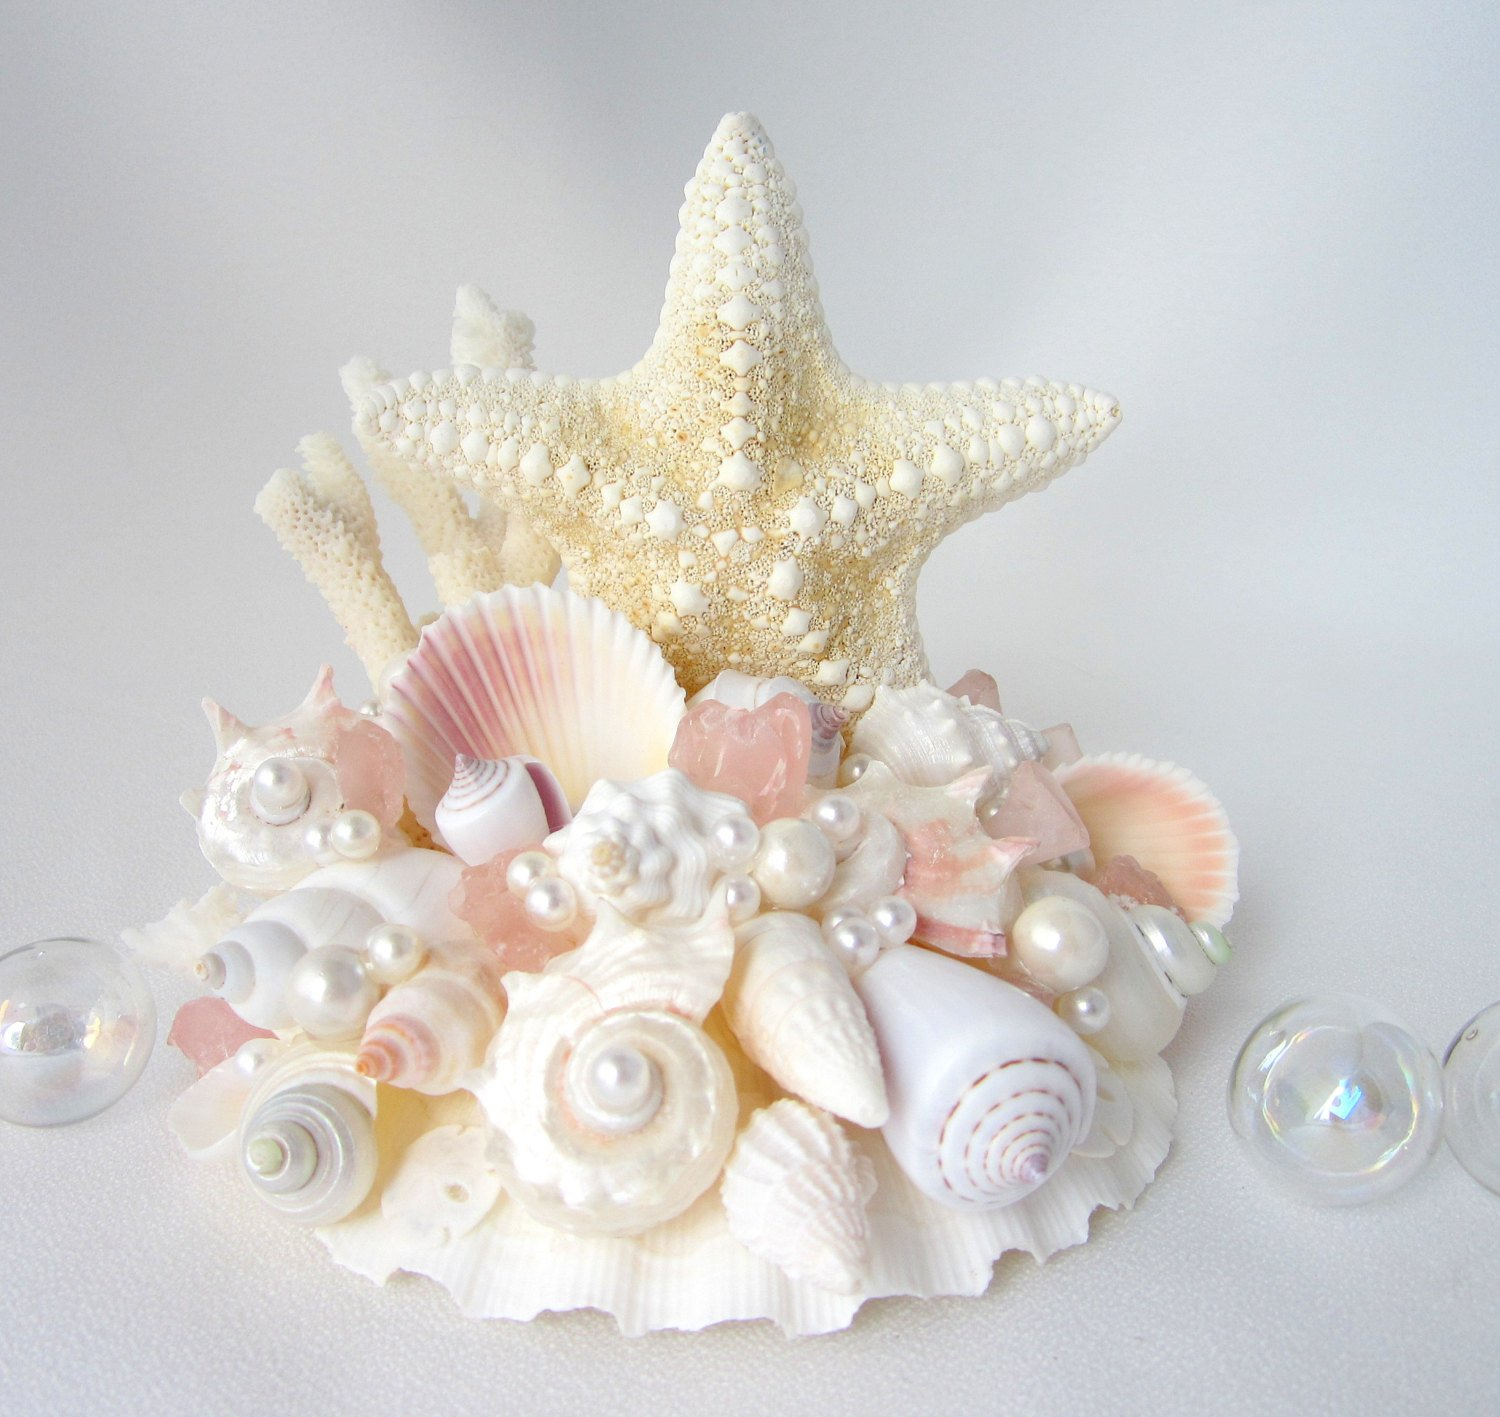 12 coastal wedding ideas sea shell wedding cake topper